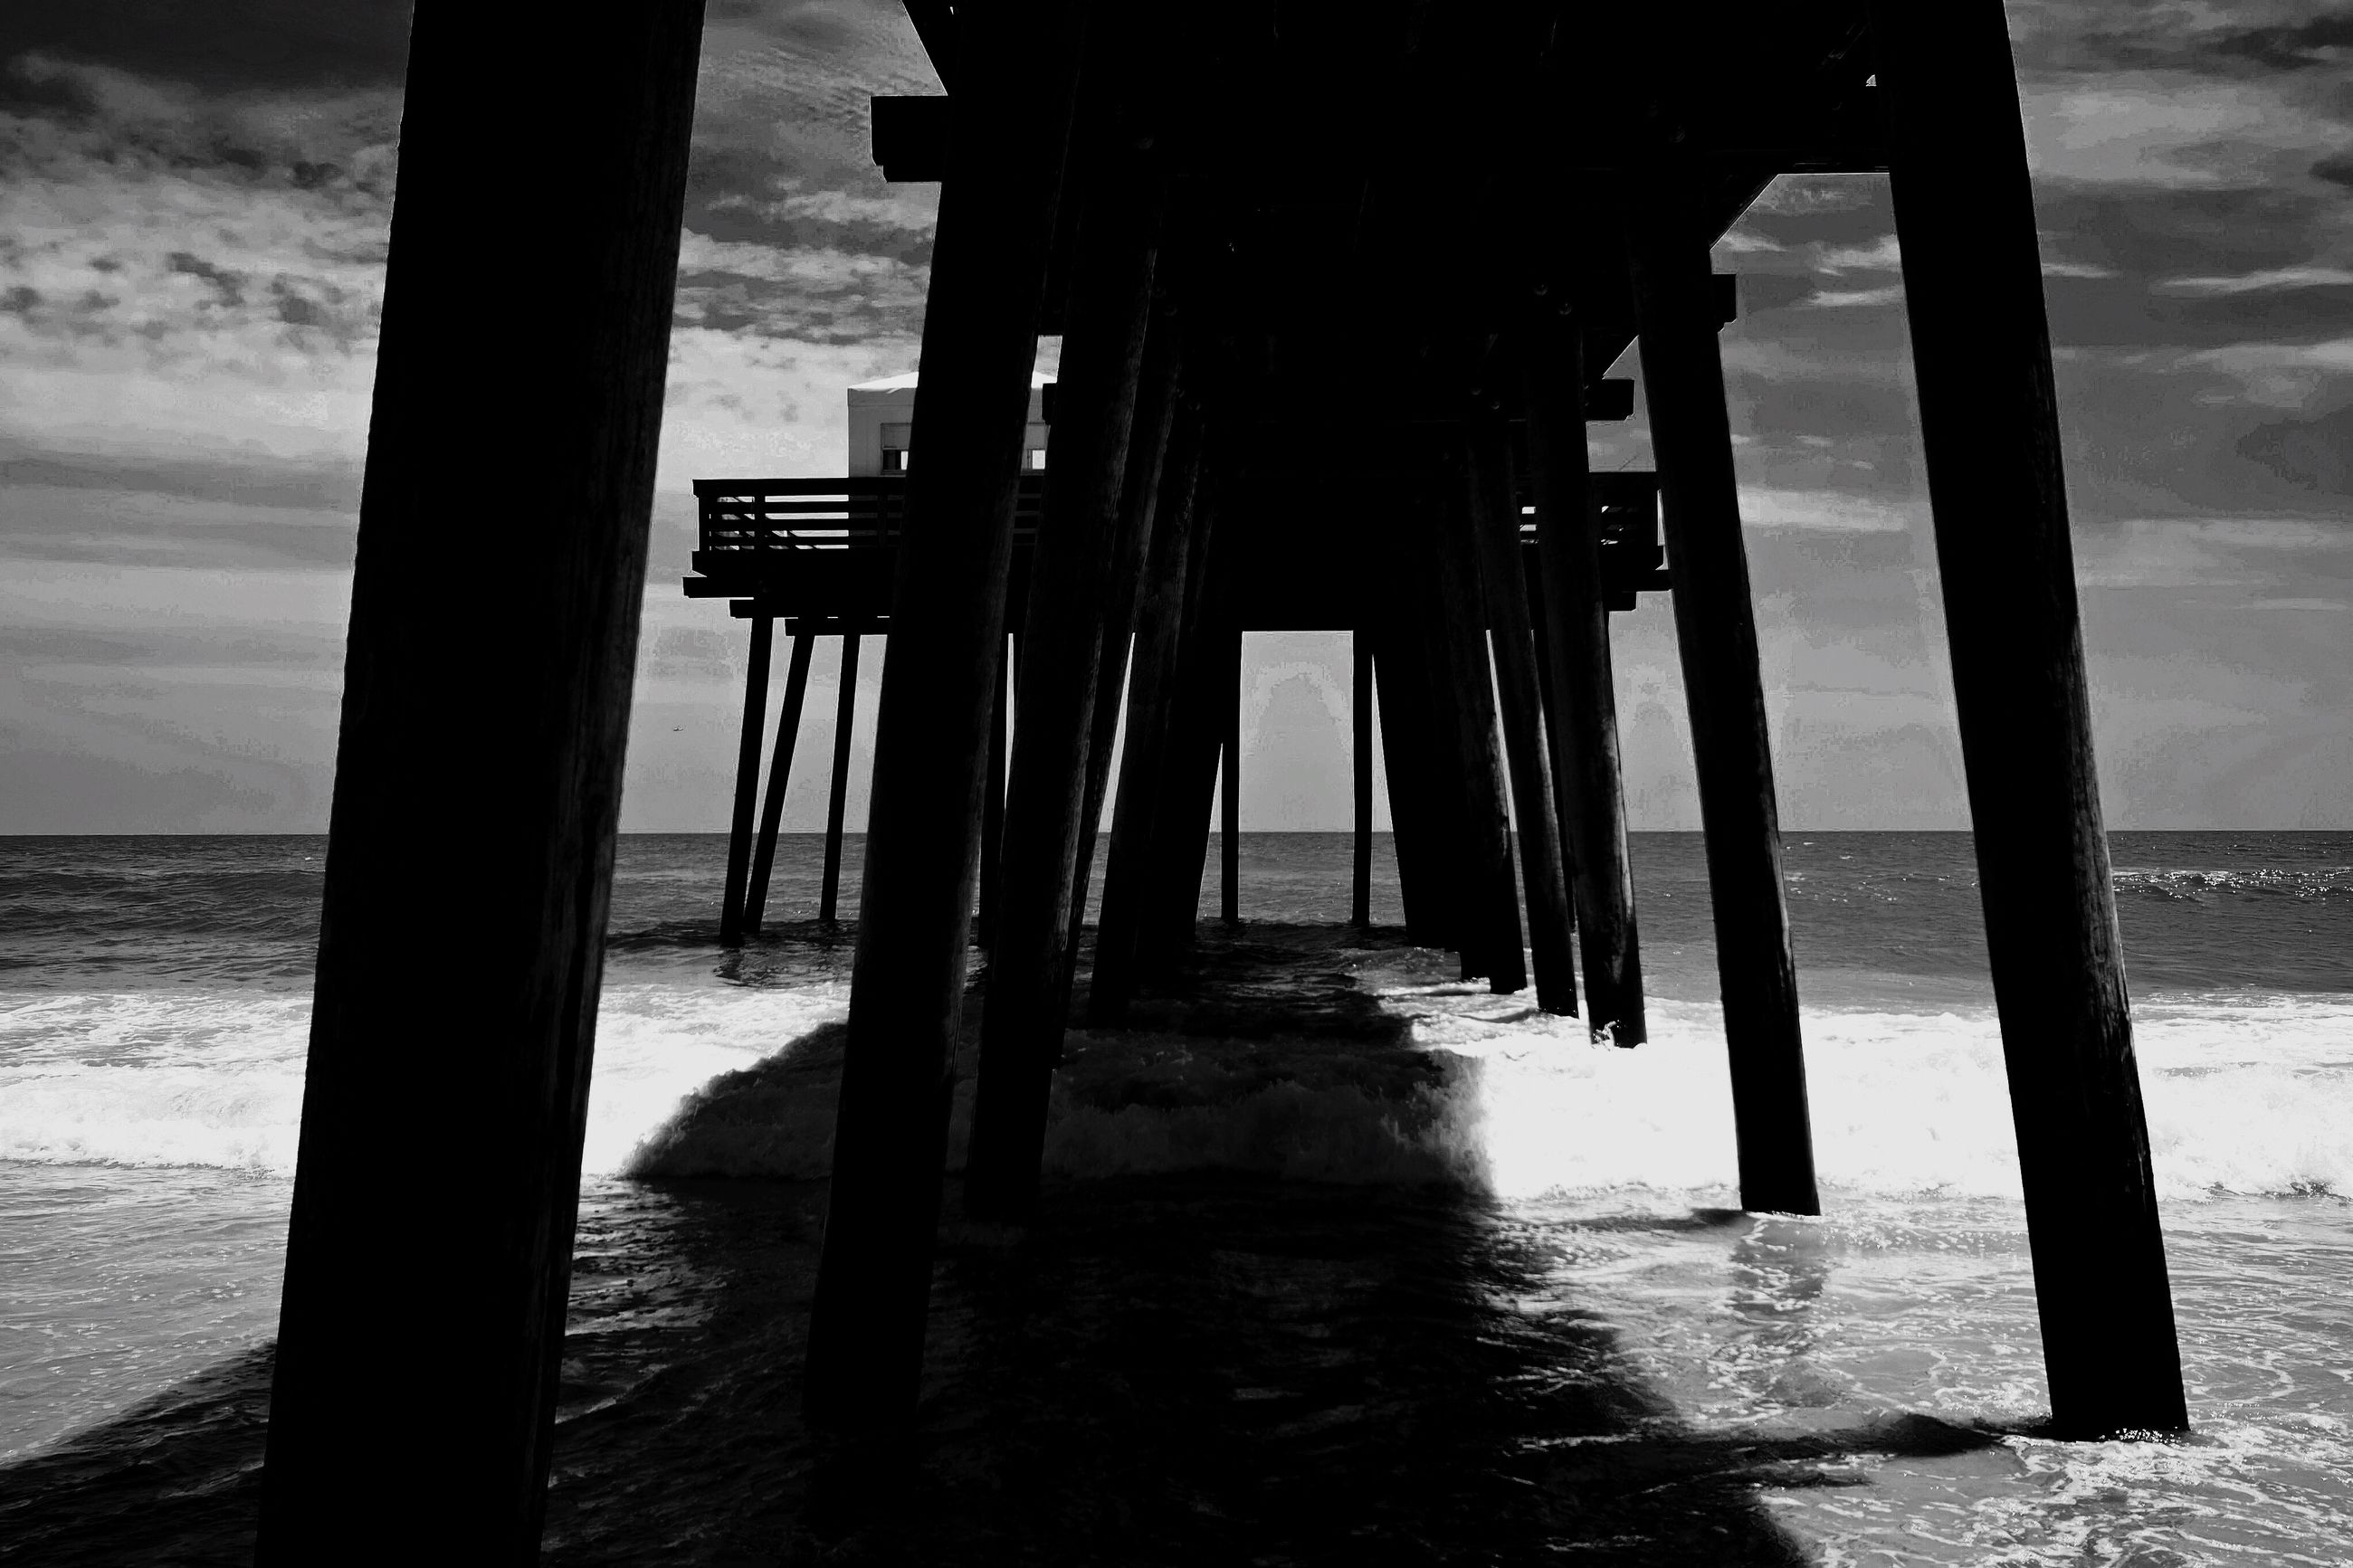 sea, water, pier, beach, horizon over water, built structure, column, in a row, support, architecture, shore, wave, surf, architectural column, vacations, scenics, tide, tranquil scene, sky, below, tranquility, pillar, supported, nature, outdoors, long, day, repetition, concrete, underneath, remote